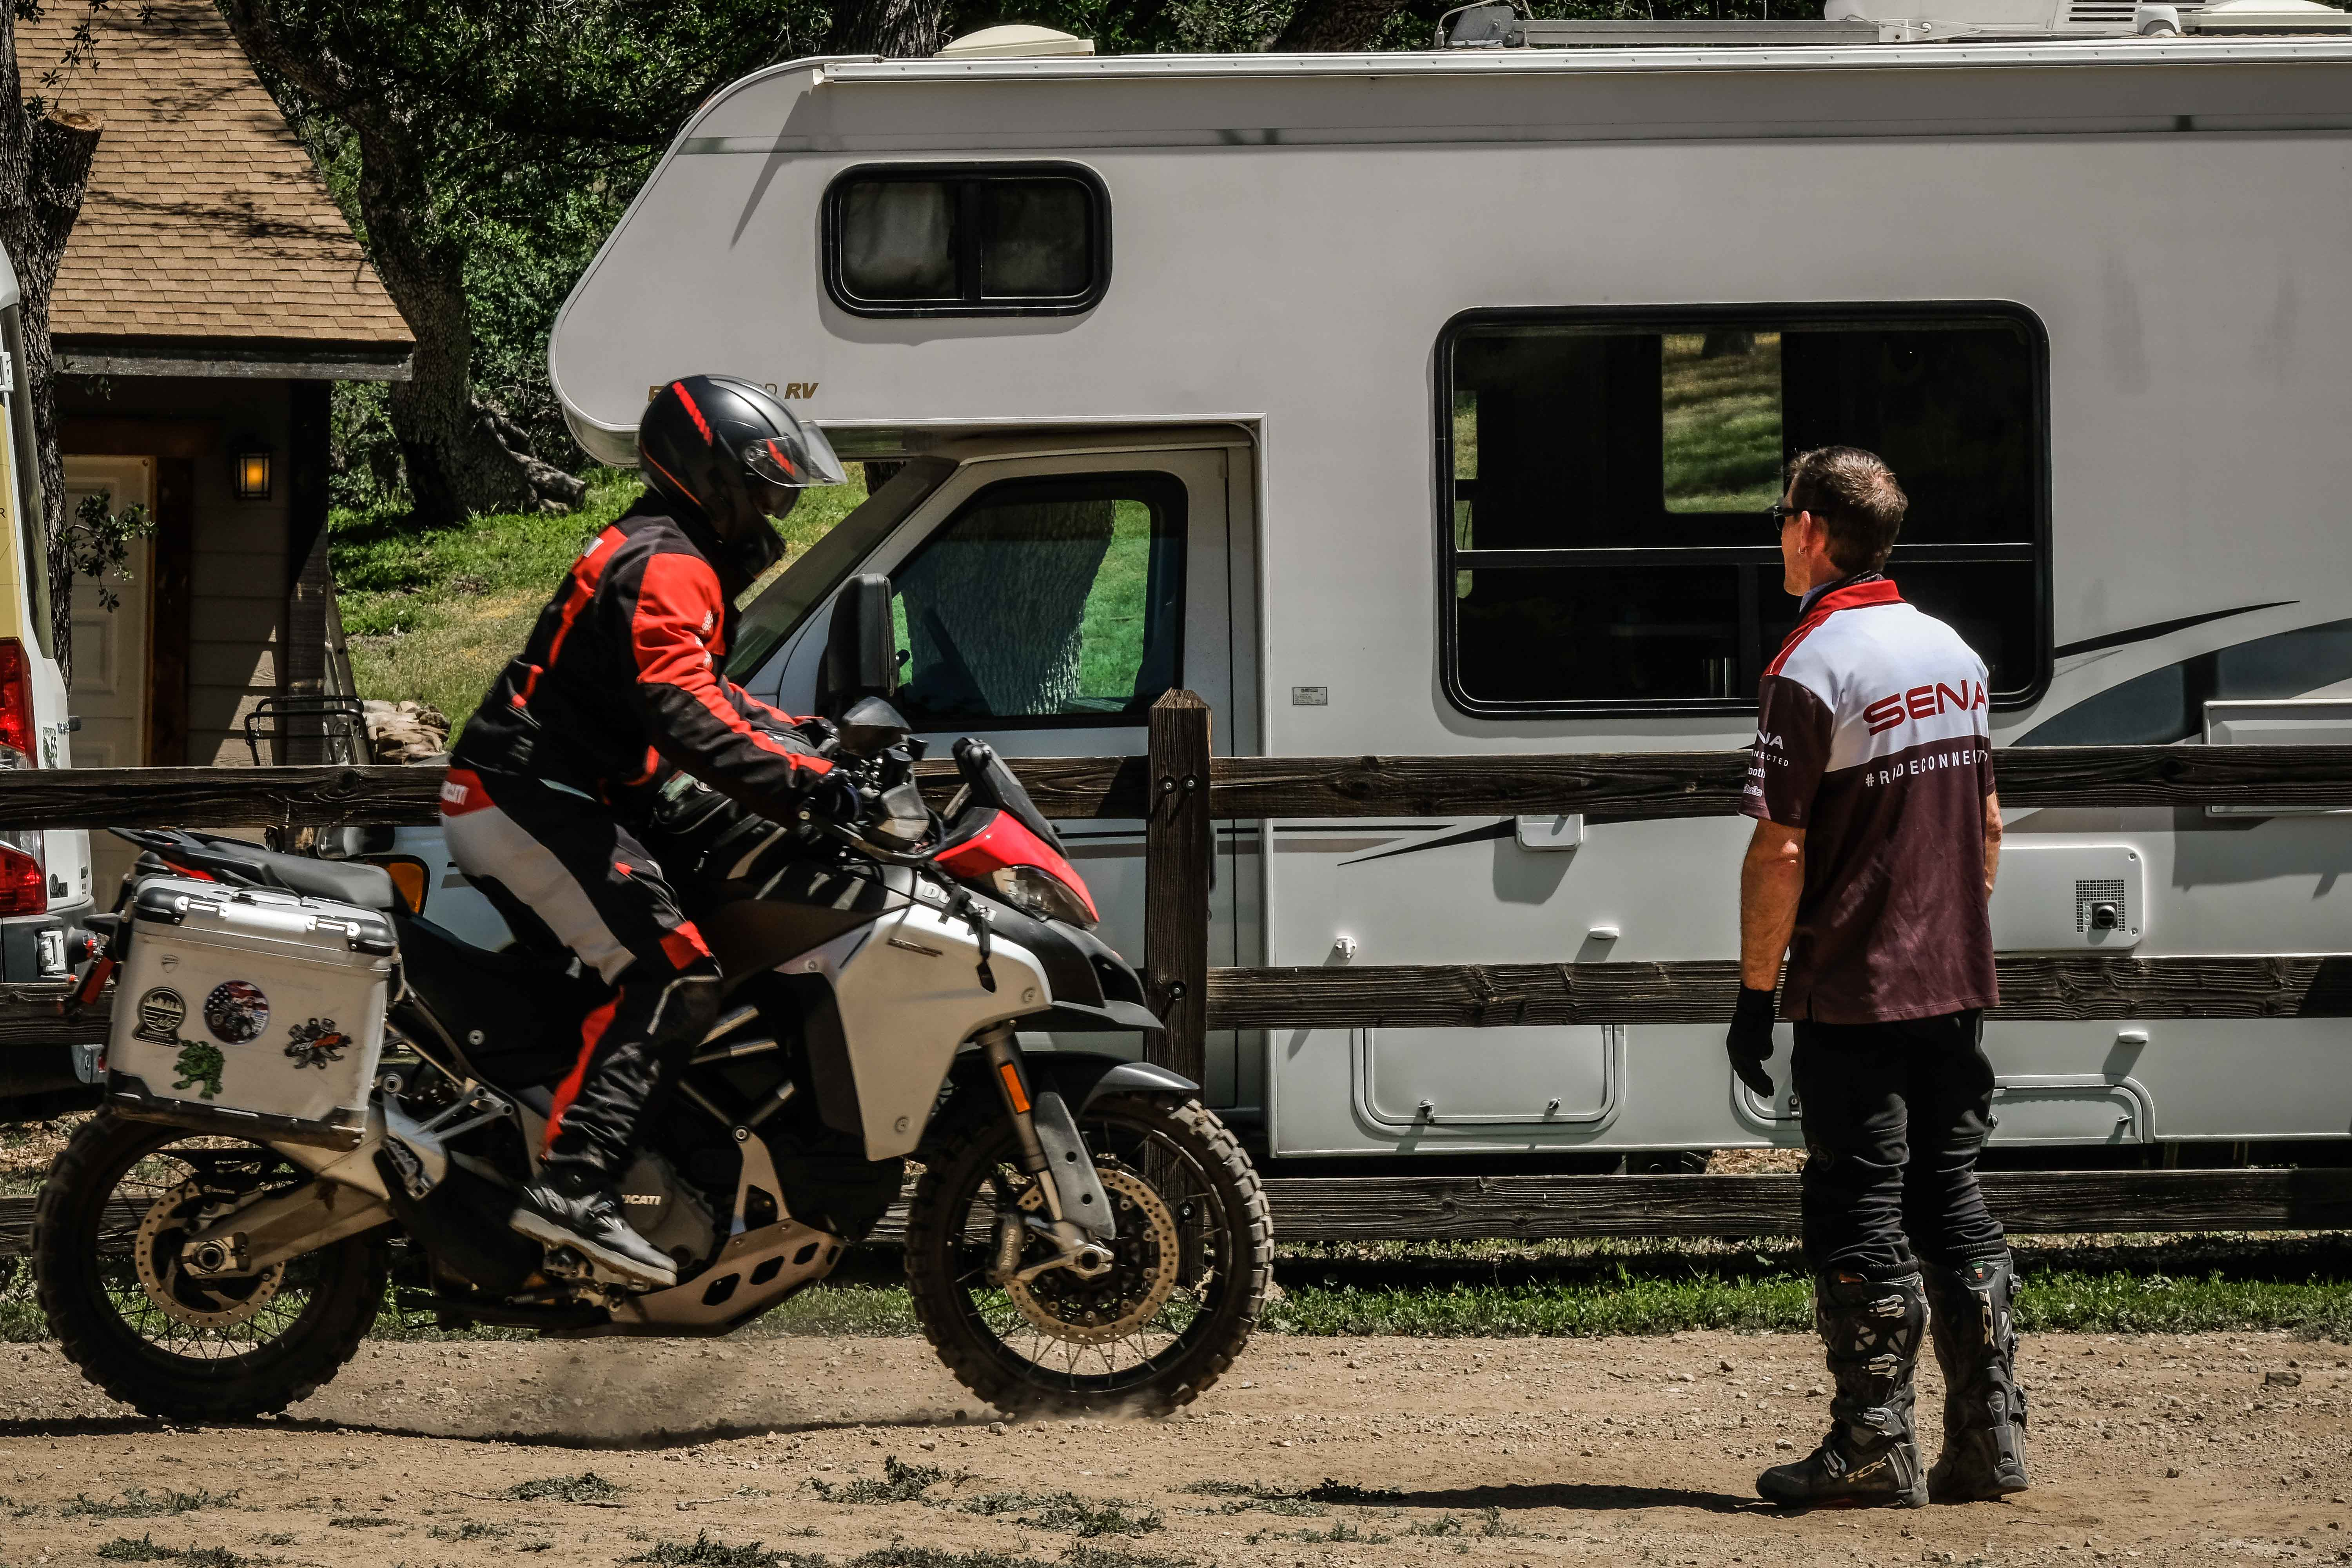 A student attempts an emergency stop on his Ducati Multistrada Endruo